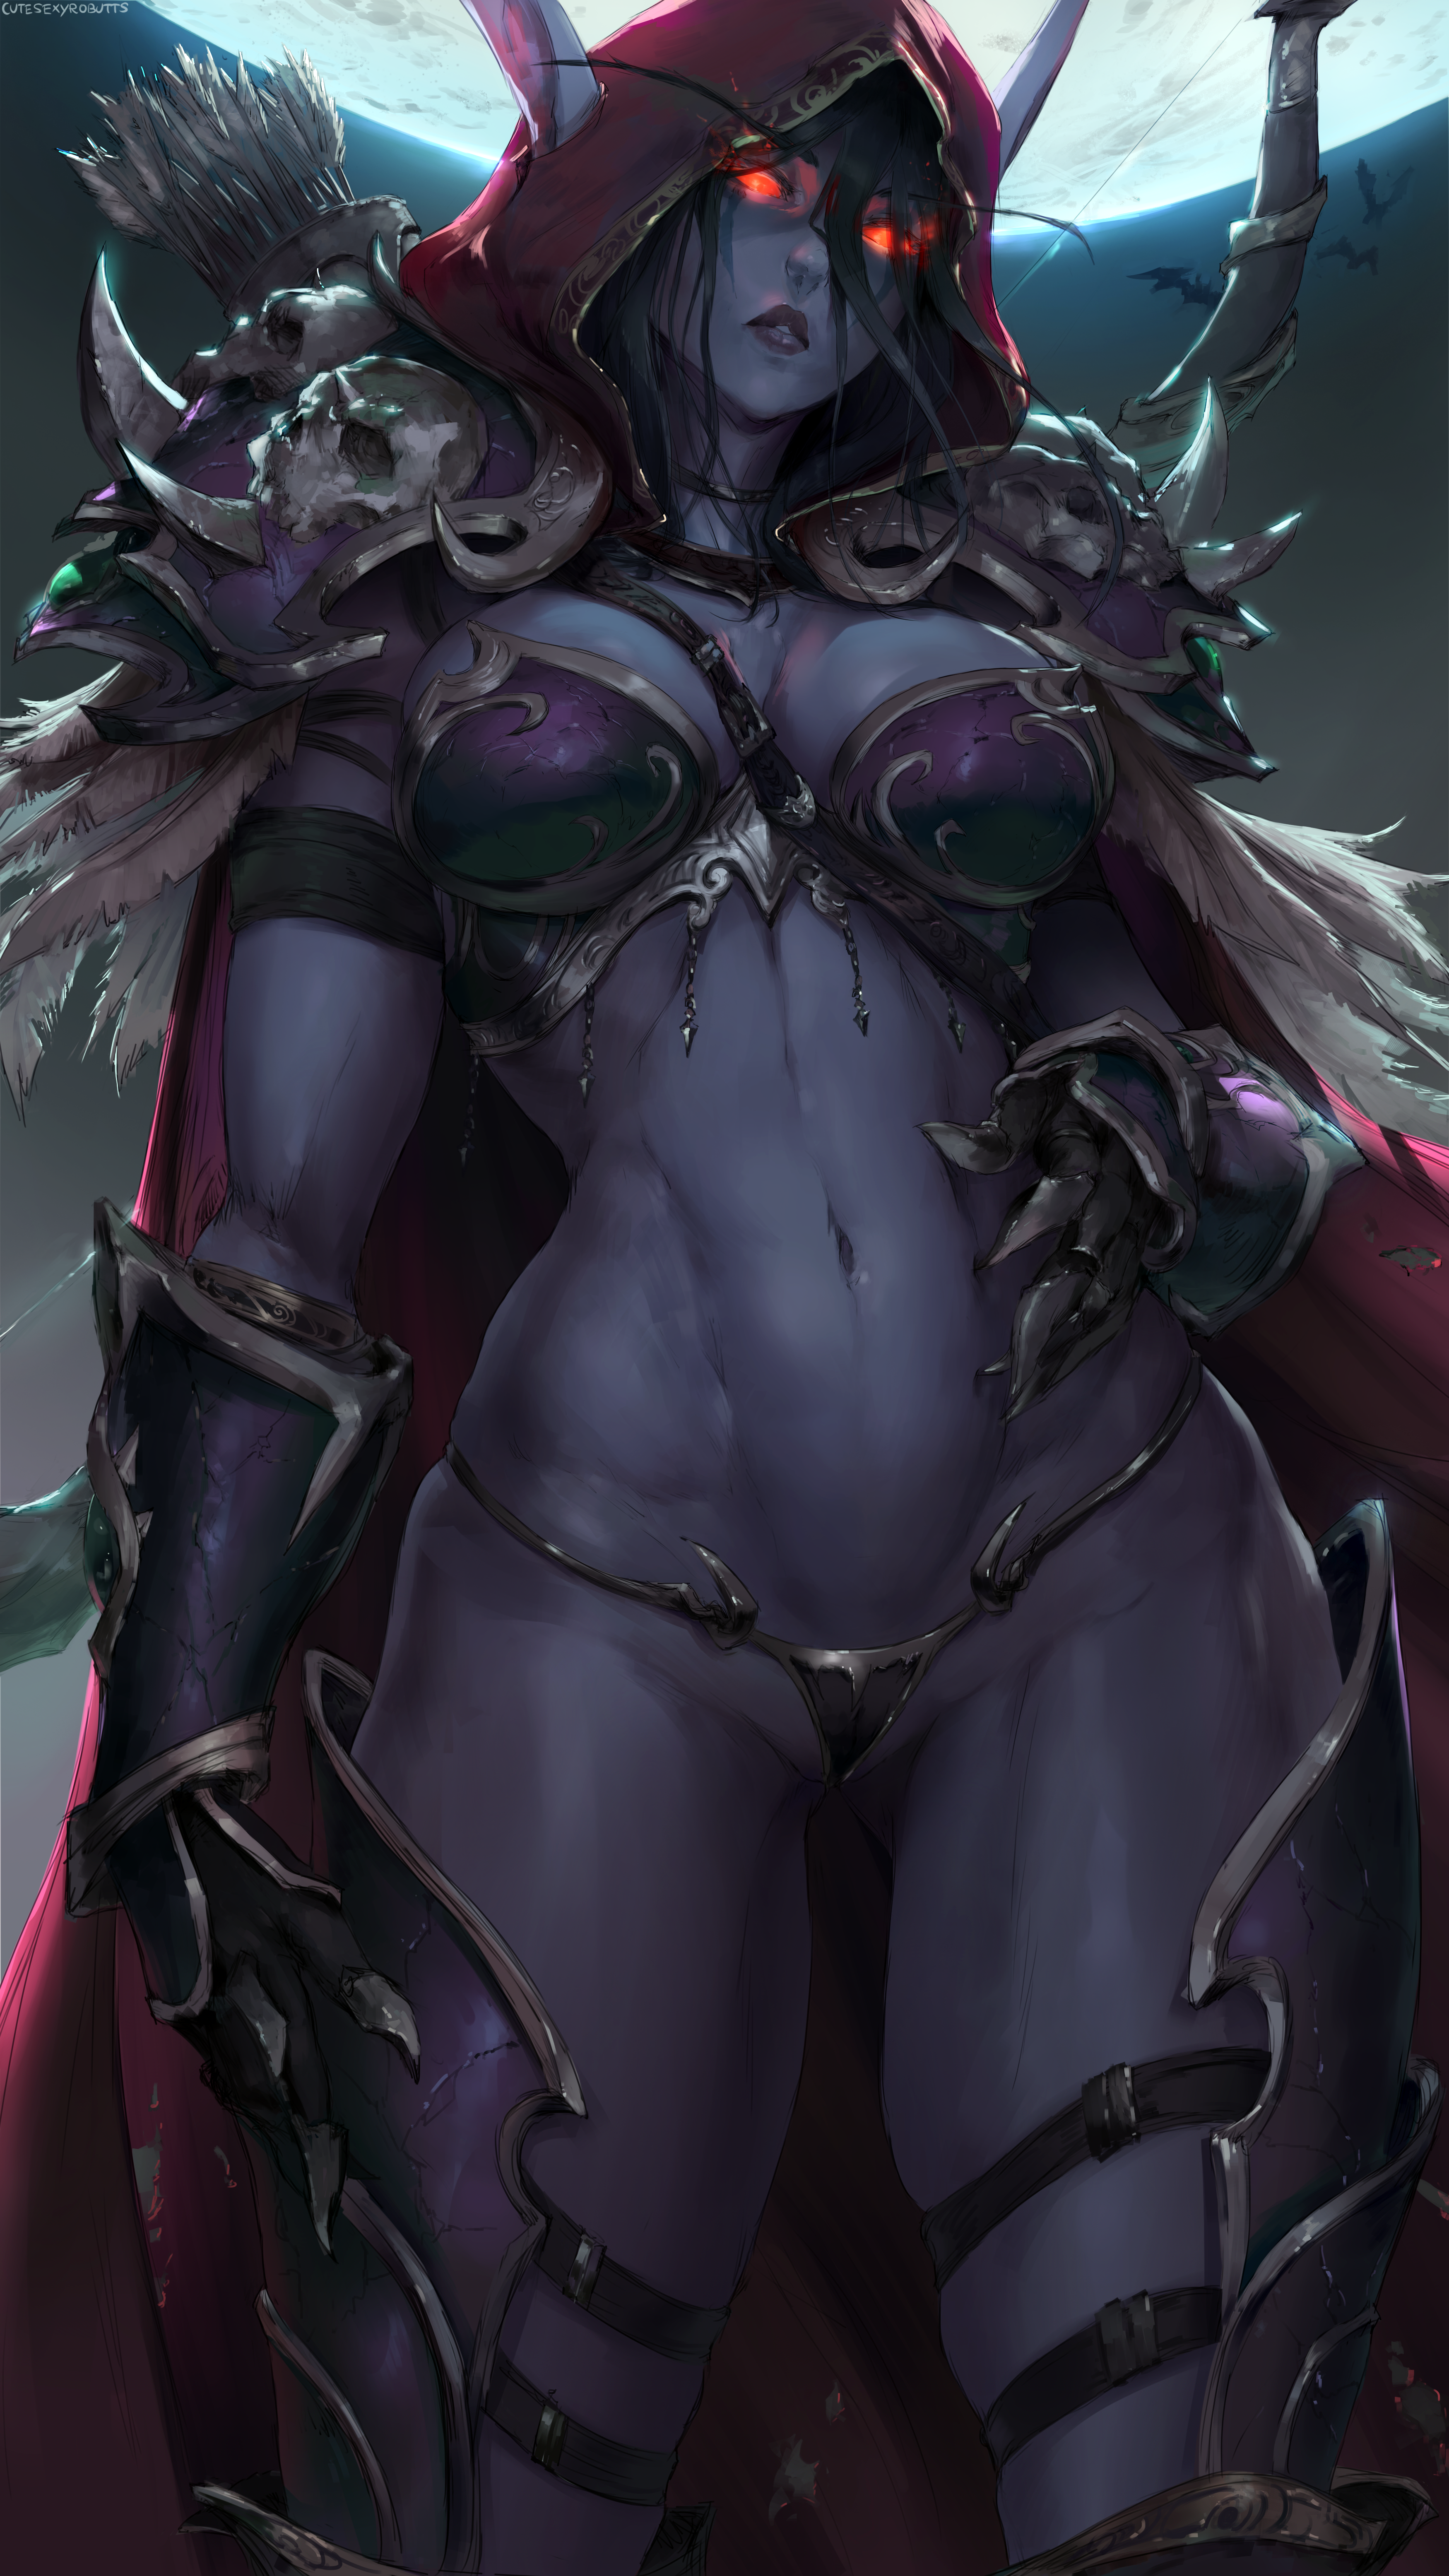 General 3500x6222 Sylvanas Windrunner Warcraft World of Warcraft Blizzard Entertainment video games women fantasy girl High Elf elves pointy ears dark fantasy hoods armor Armored skull arrows bow bow and arrow bra panties thick thigh the gap belly moonlight night dark red eyes looking at viewer low-angle portrait display vertical artwork drawing video game characters video game girls digital art illustration video game art fan art cutesexyrobutts dark hair feathers bats fictional character